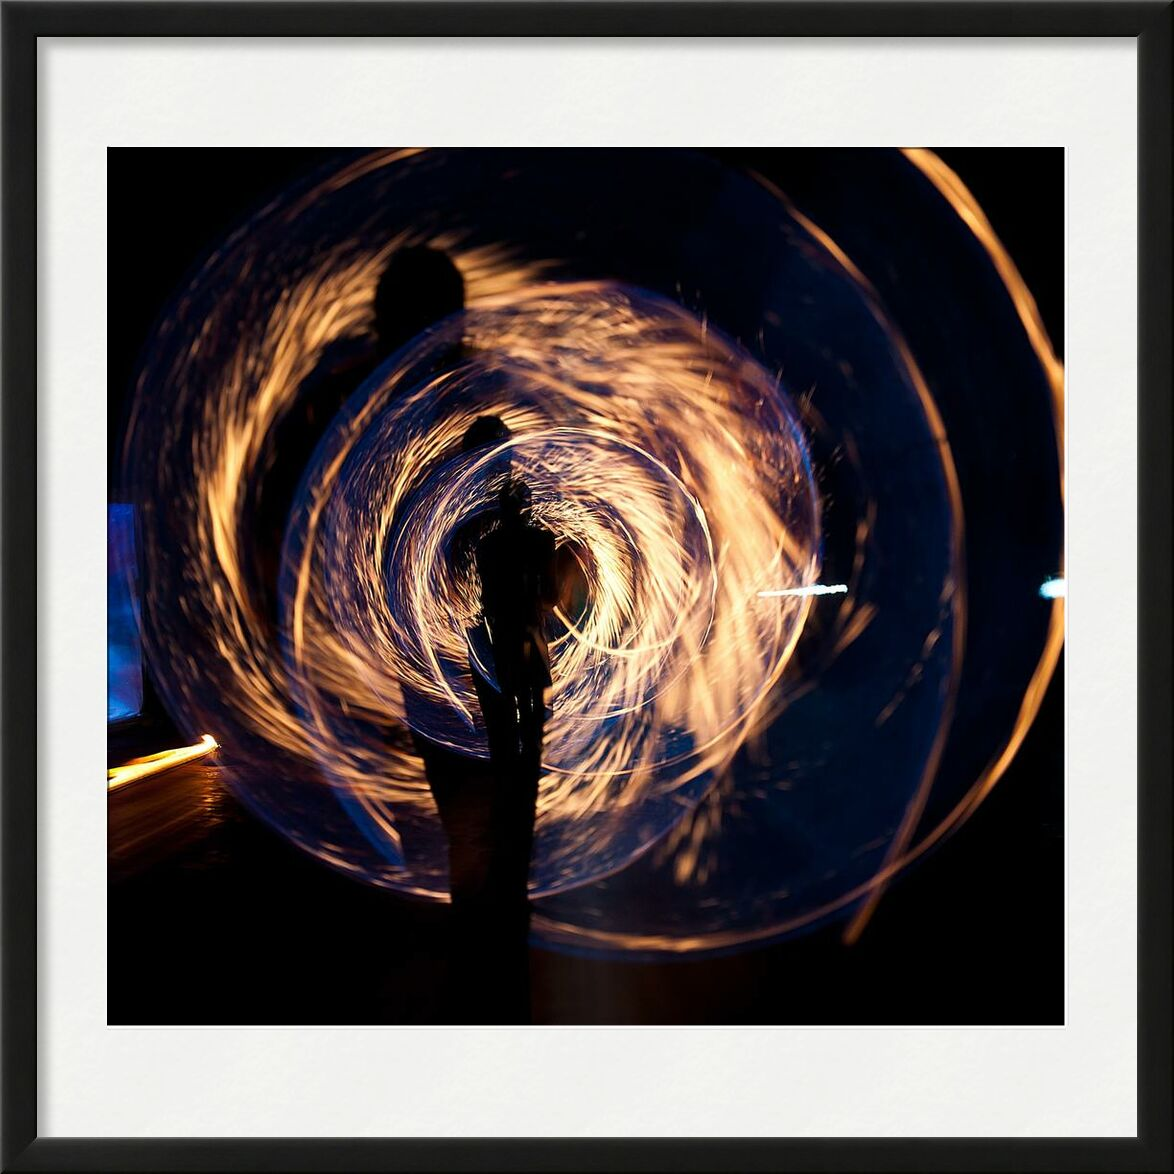 Chaleur from Aliss ART, Prodi Art, abstract, art, burnt, color, dark, design, energy, fantasy, fire, flame, graphic, heat, hot, human, illuminated, light, long-exposure, motion, night, ring, round, show, smoke